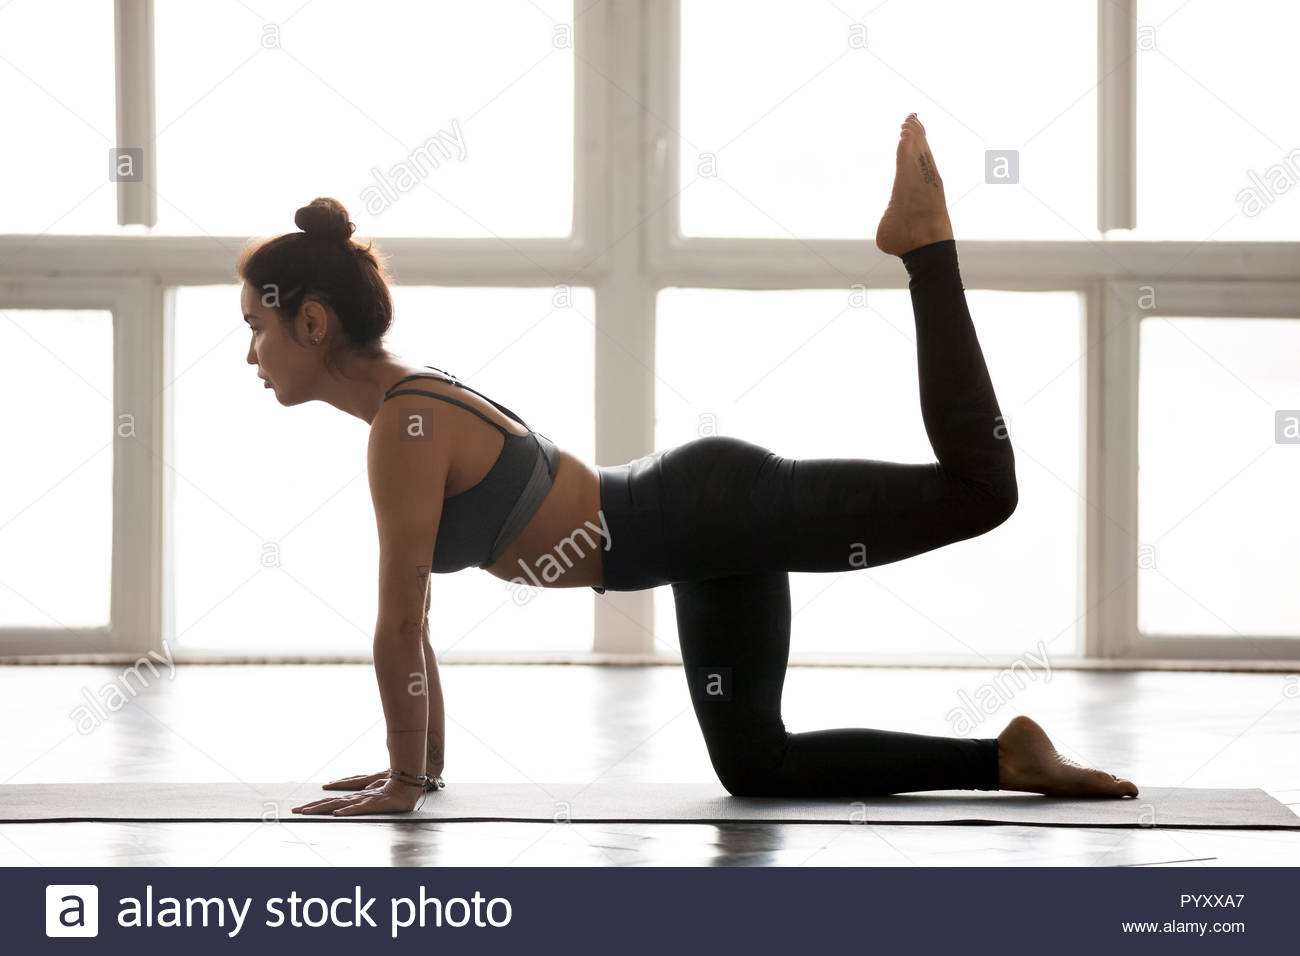 young-sporty-yogi-woman-practicing-yoga-doing-donkey-kick-exer-PYXXA7.jpg